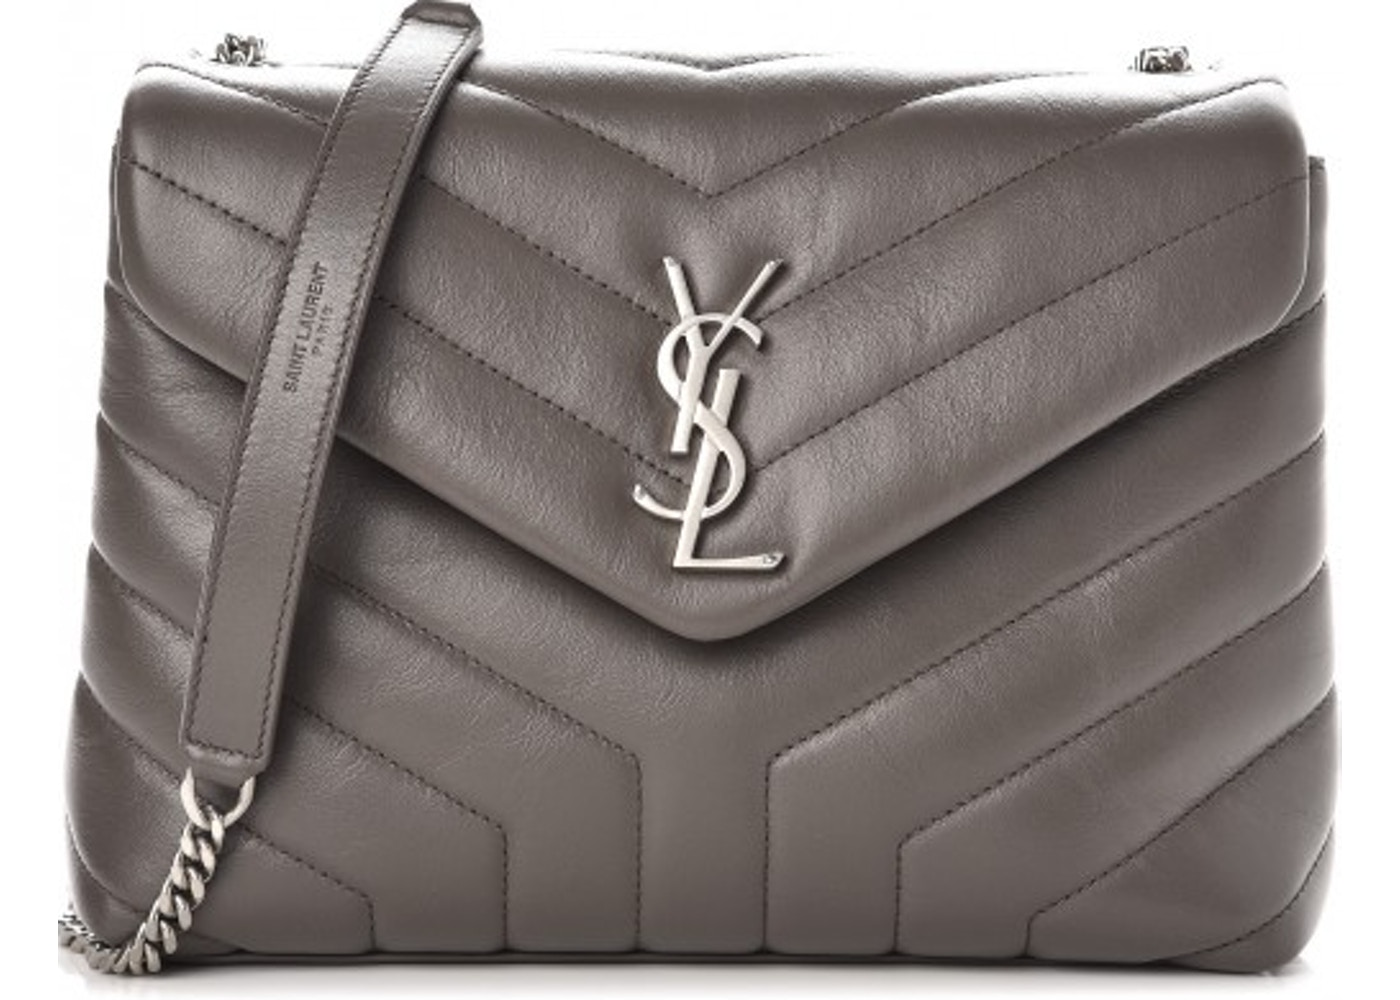 dba7b7bb0110c Saint Laurent Chain Bag LouLou Monogram Quilted Chevron YSL ...